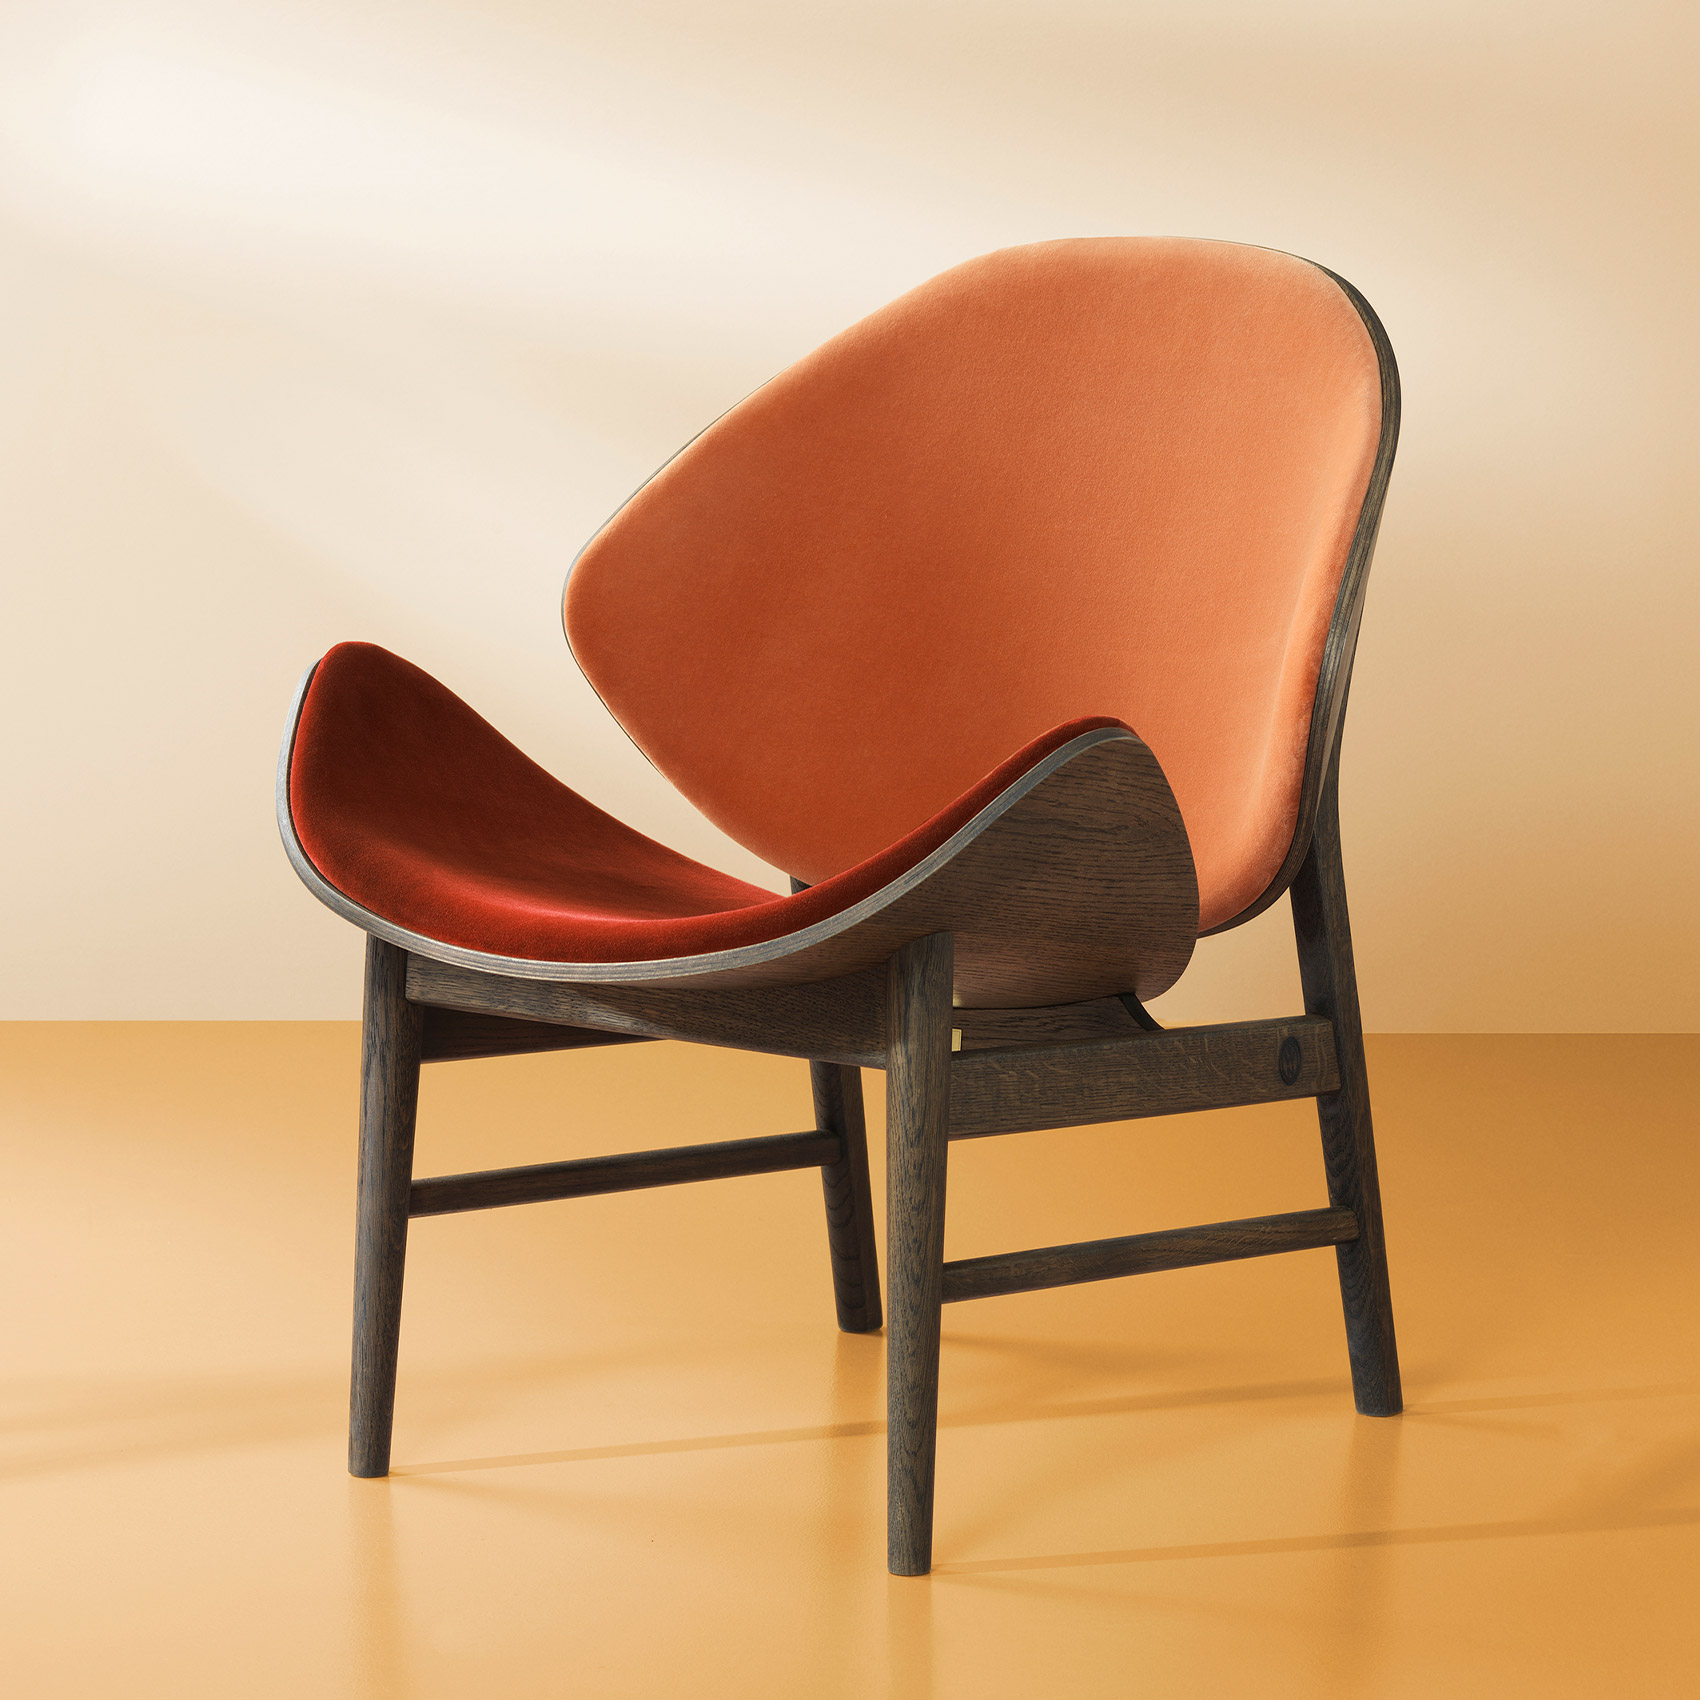 The orange lounge chair in smoked oak and rusty rose/brick red colour